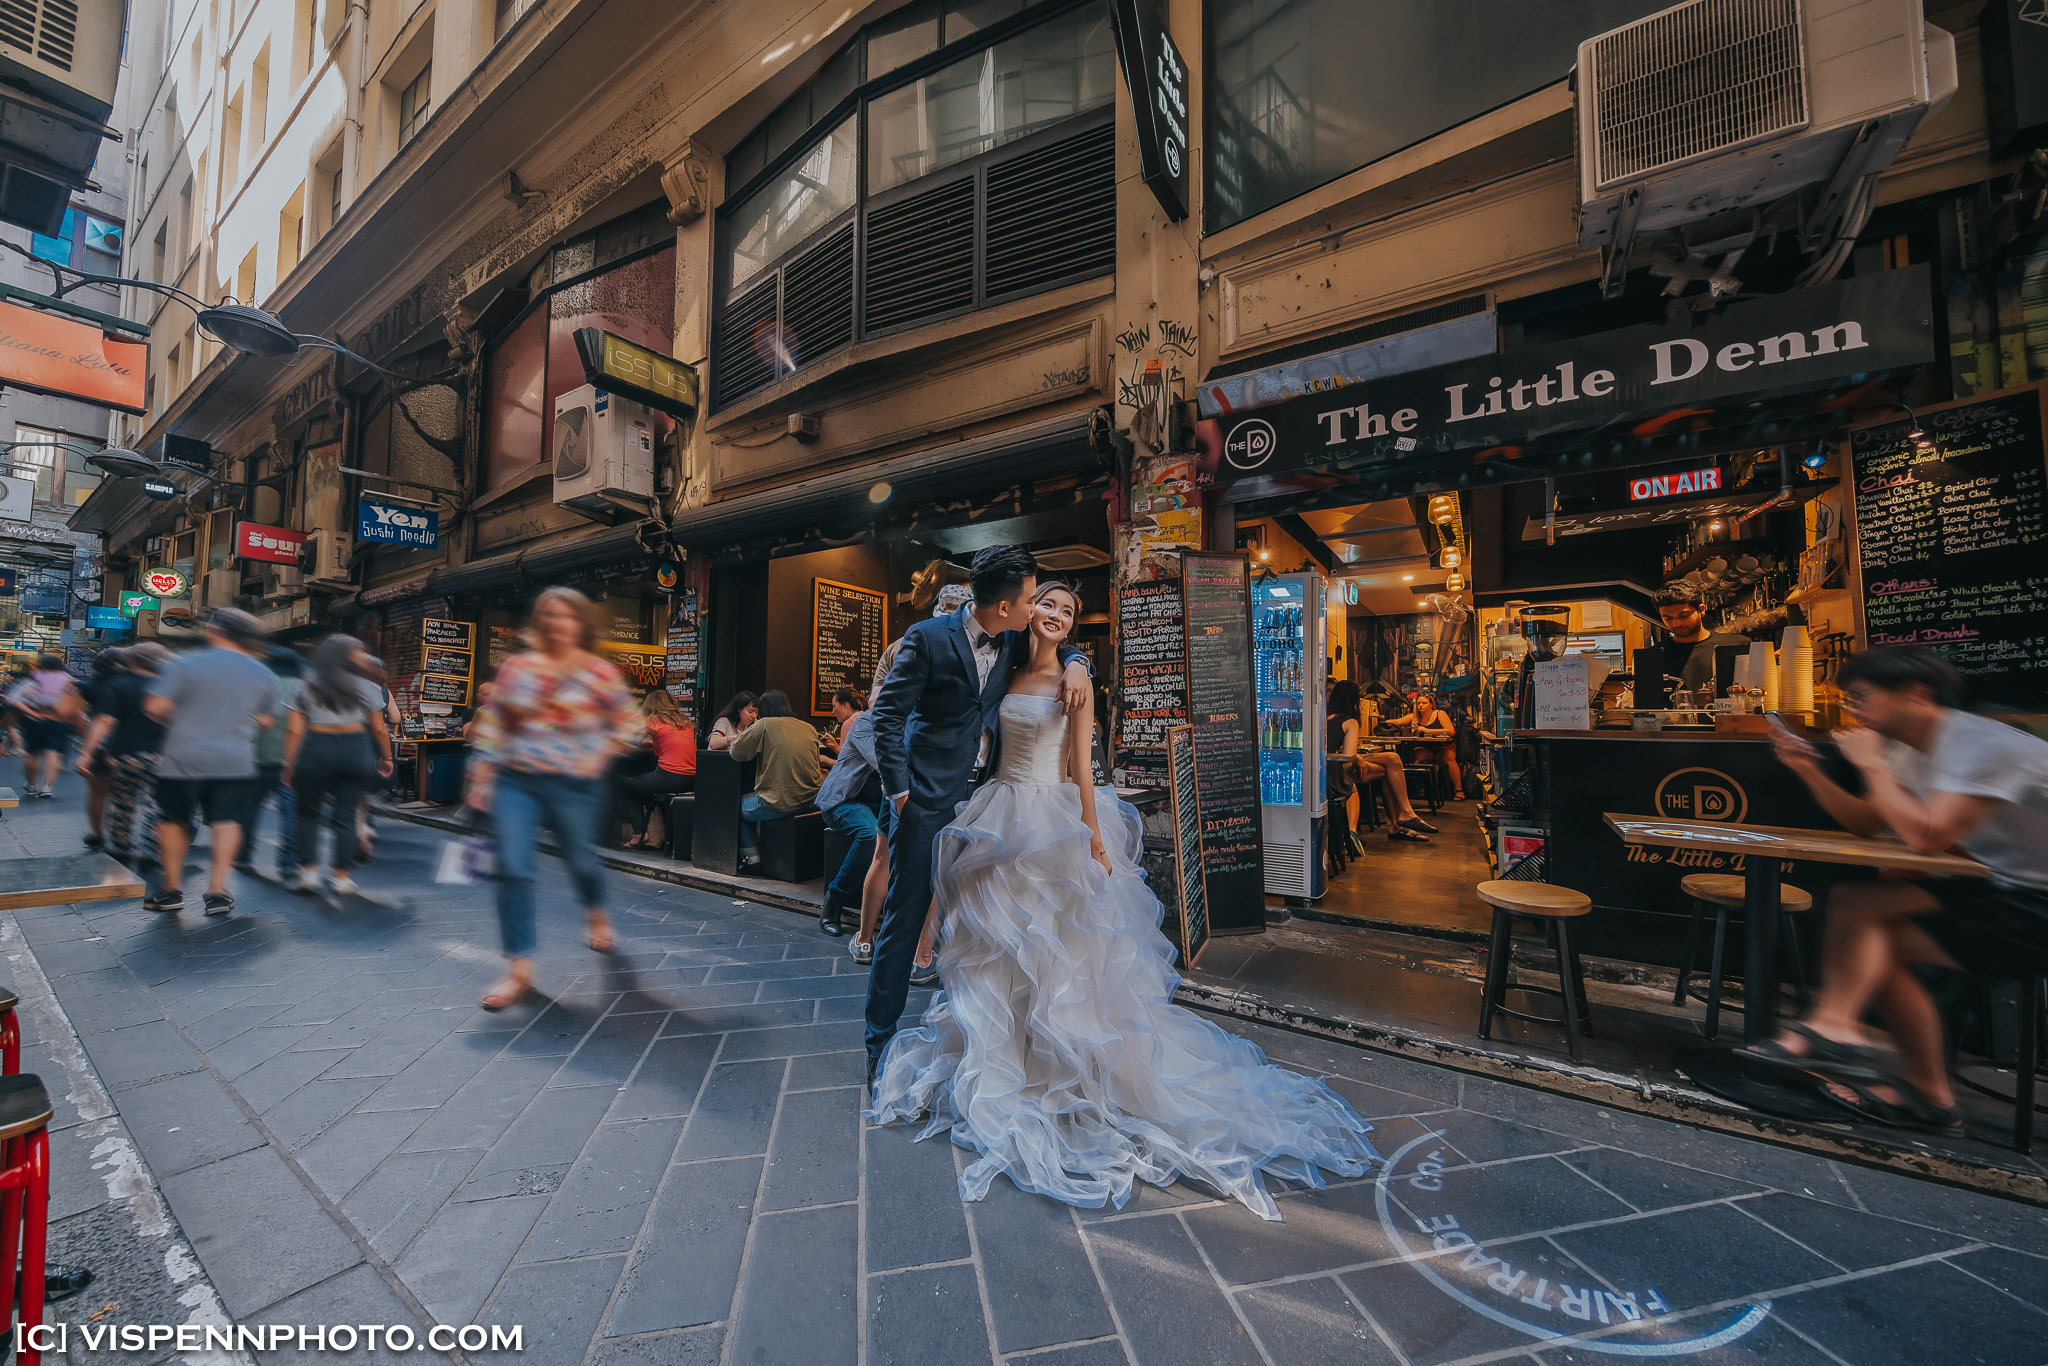 PRE WEDDING Photography Melbourne AndyCHEN 5489 A7R2 ZHPENN